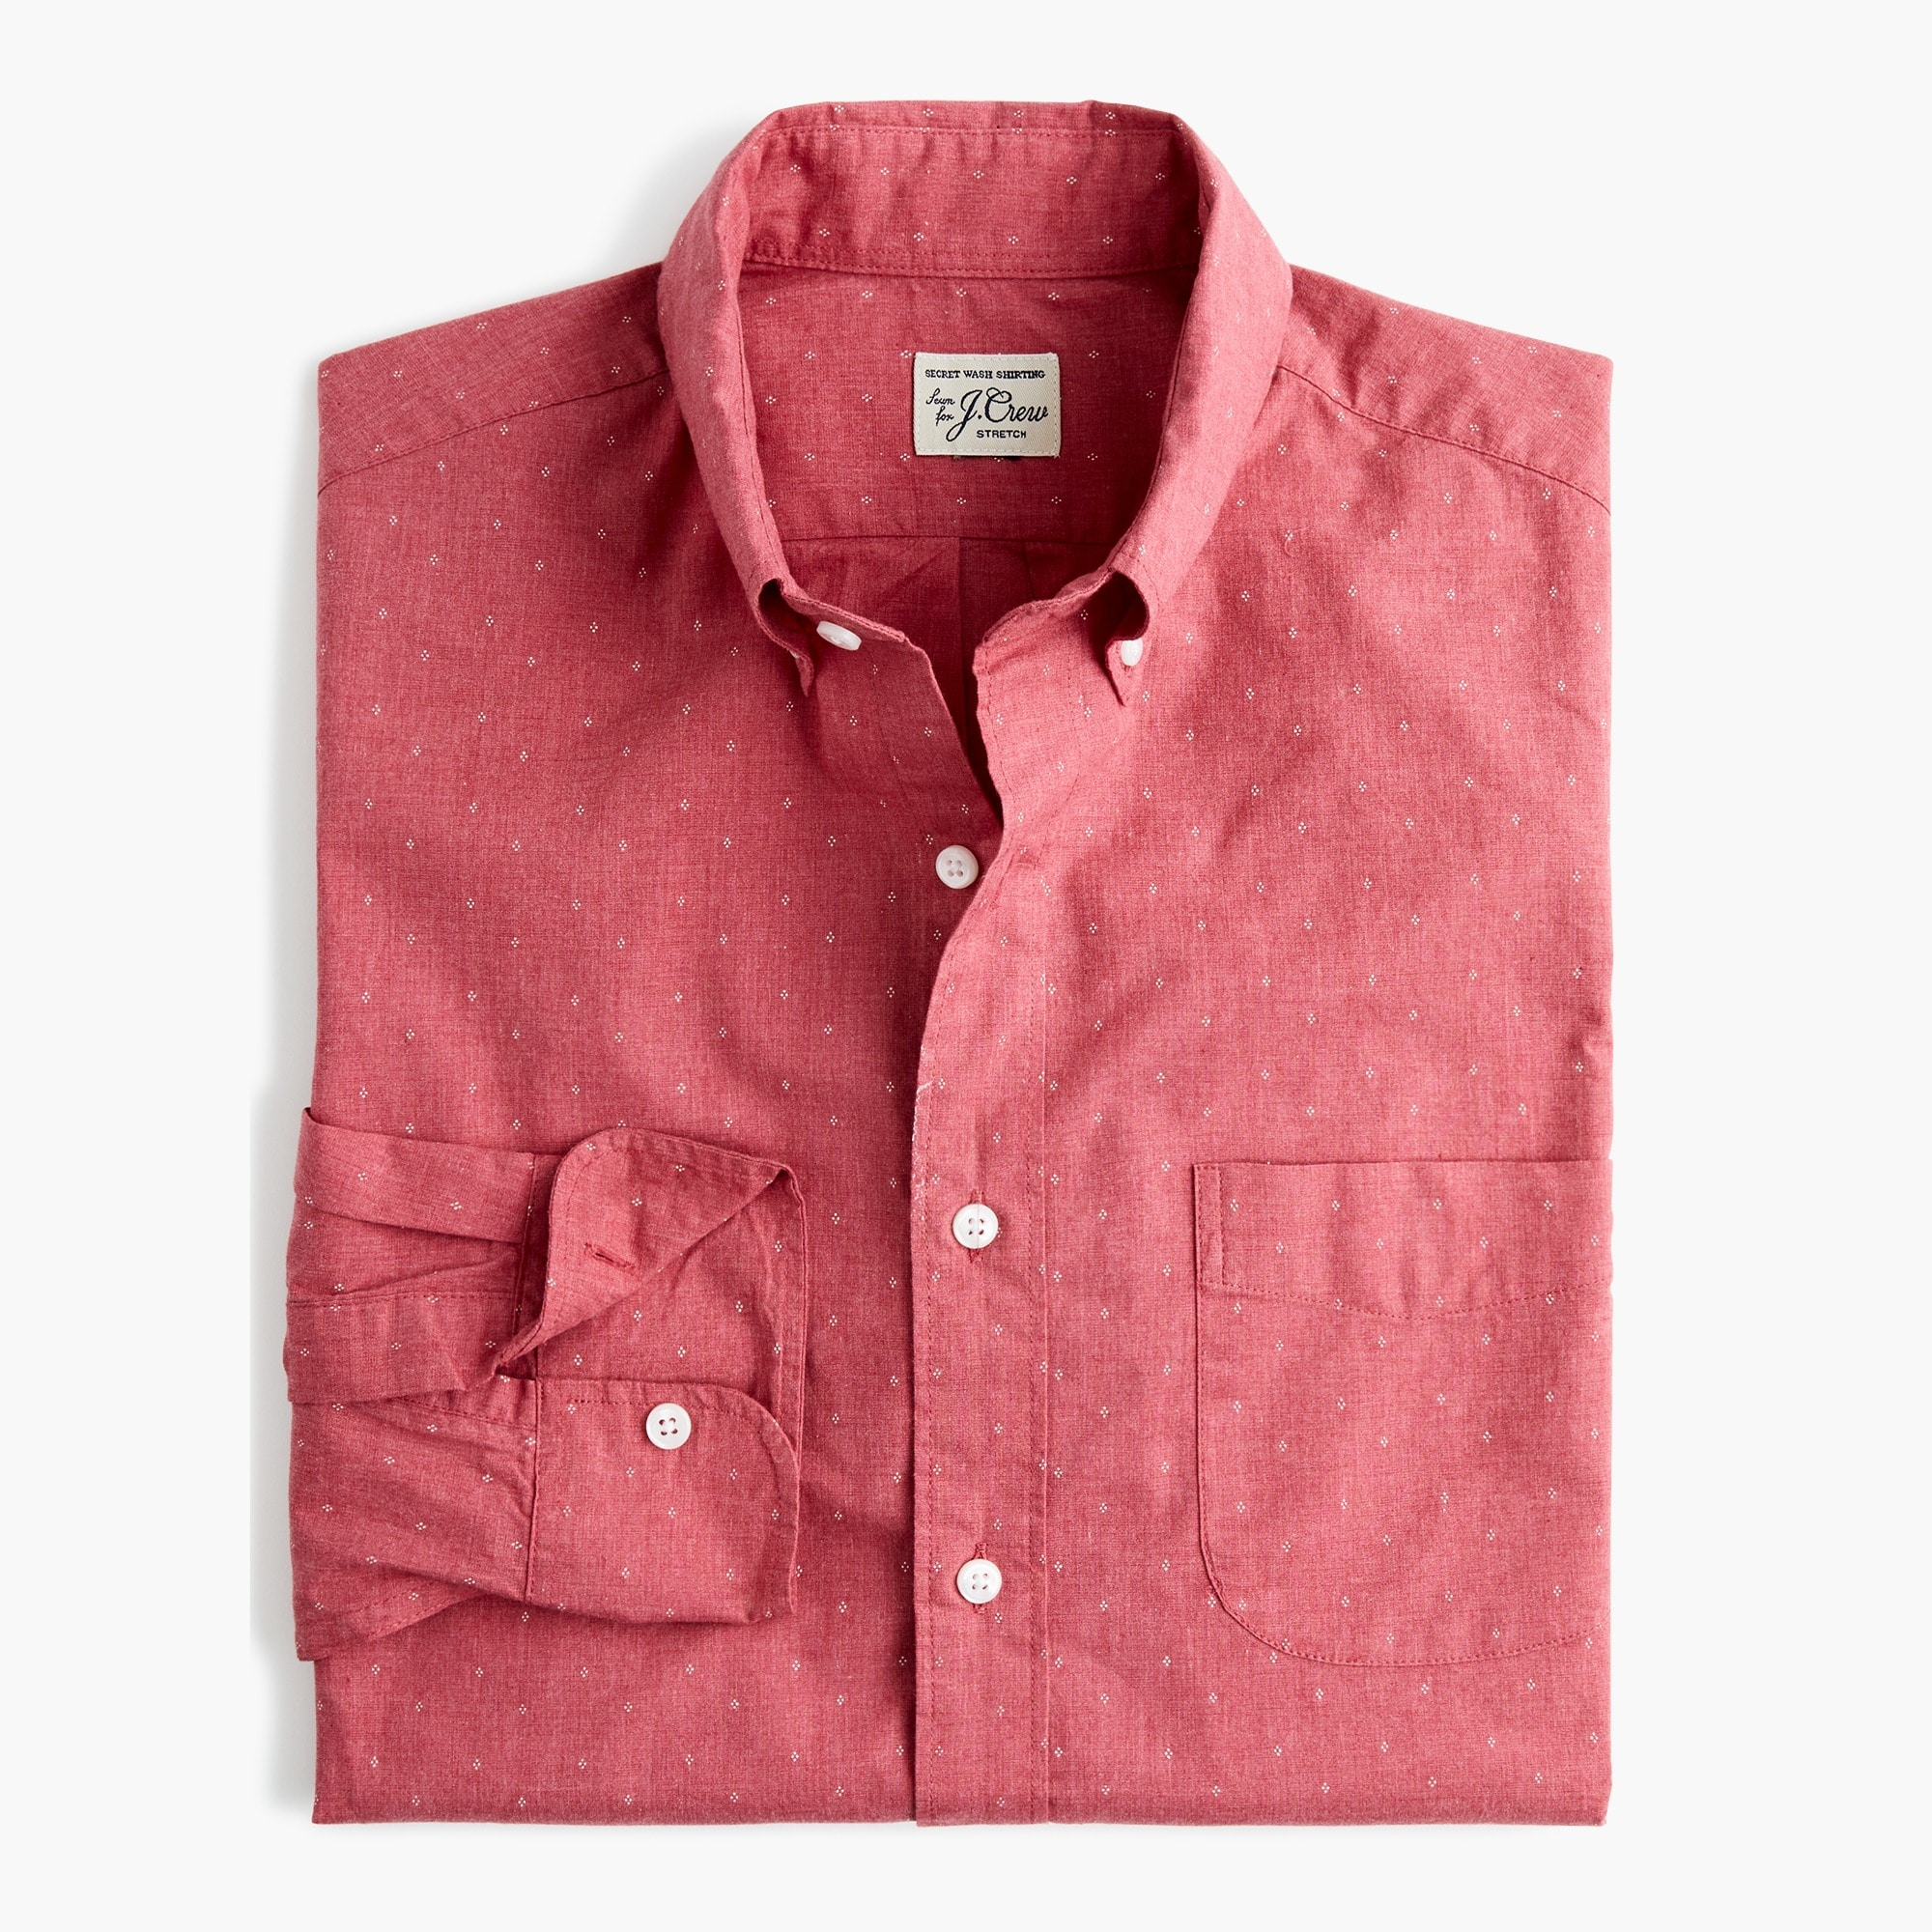 Classic Stretch Secret Wash shirt in heathered red print